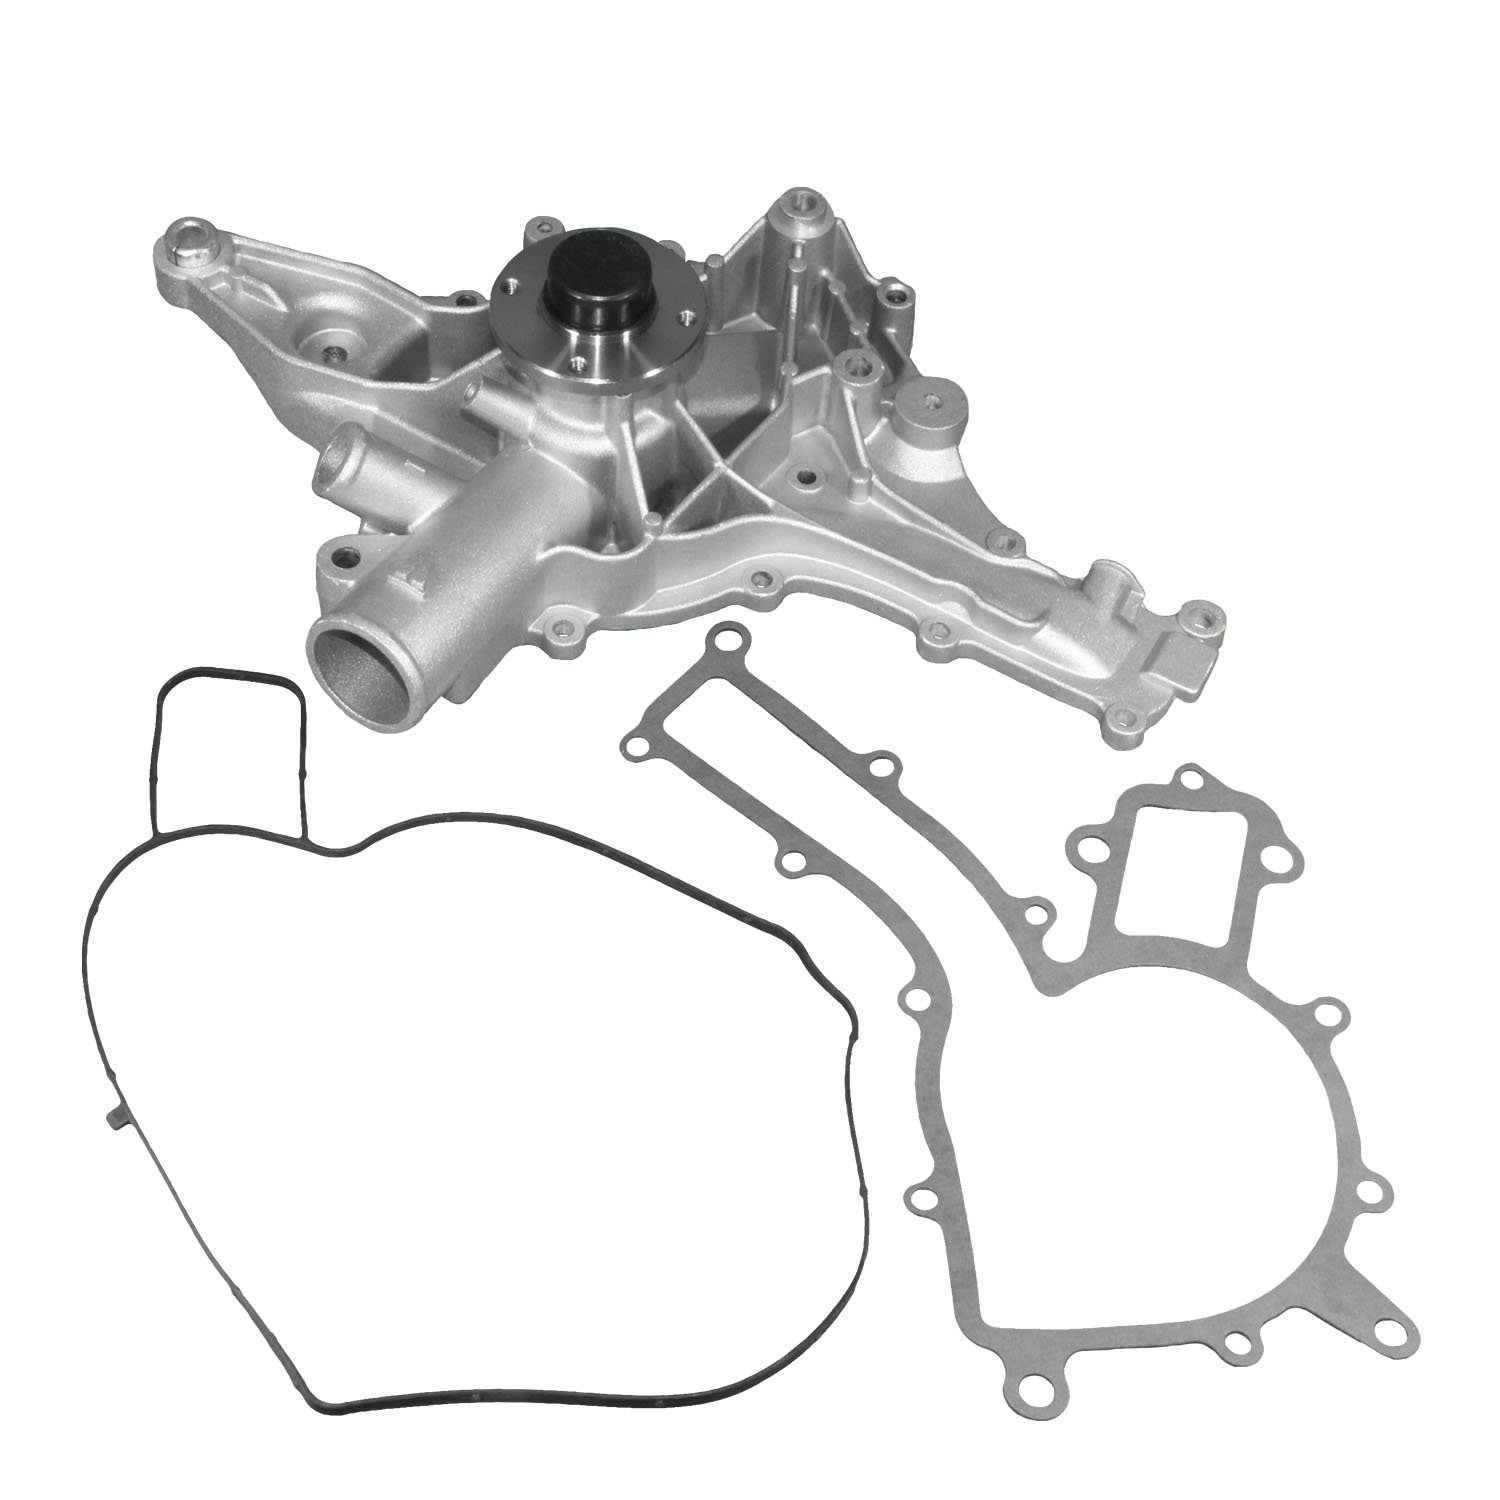 ACDelco 252-826 Professional Water Pump Kit